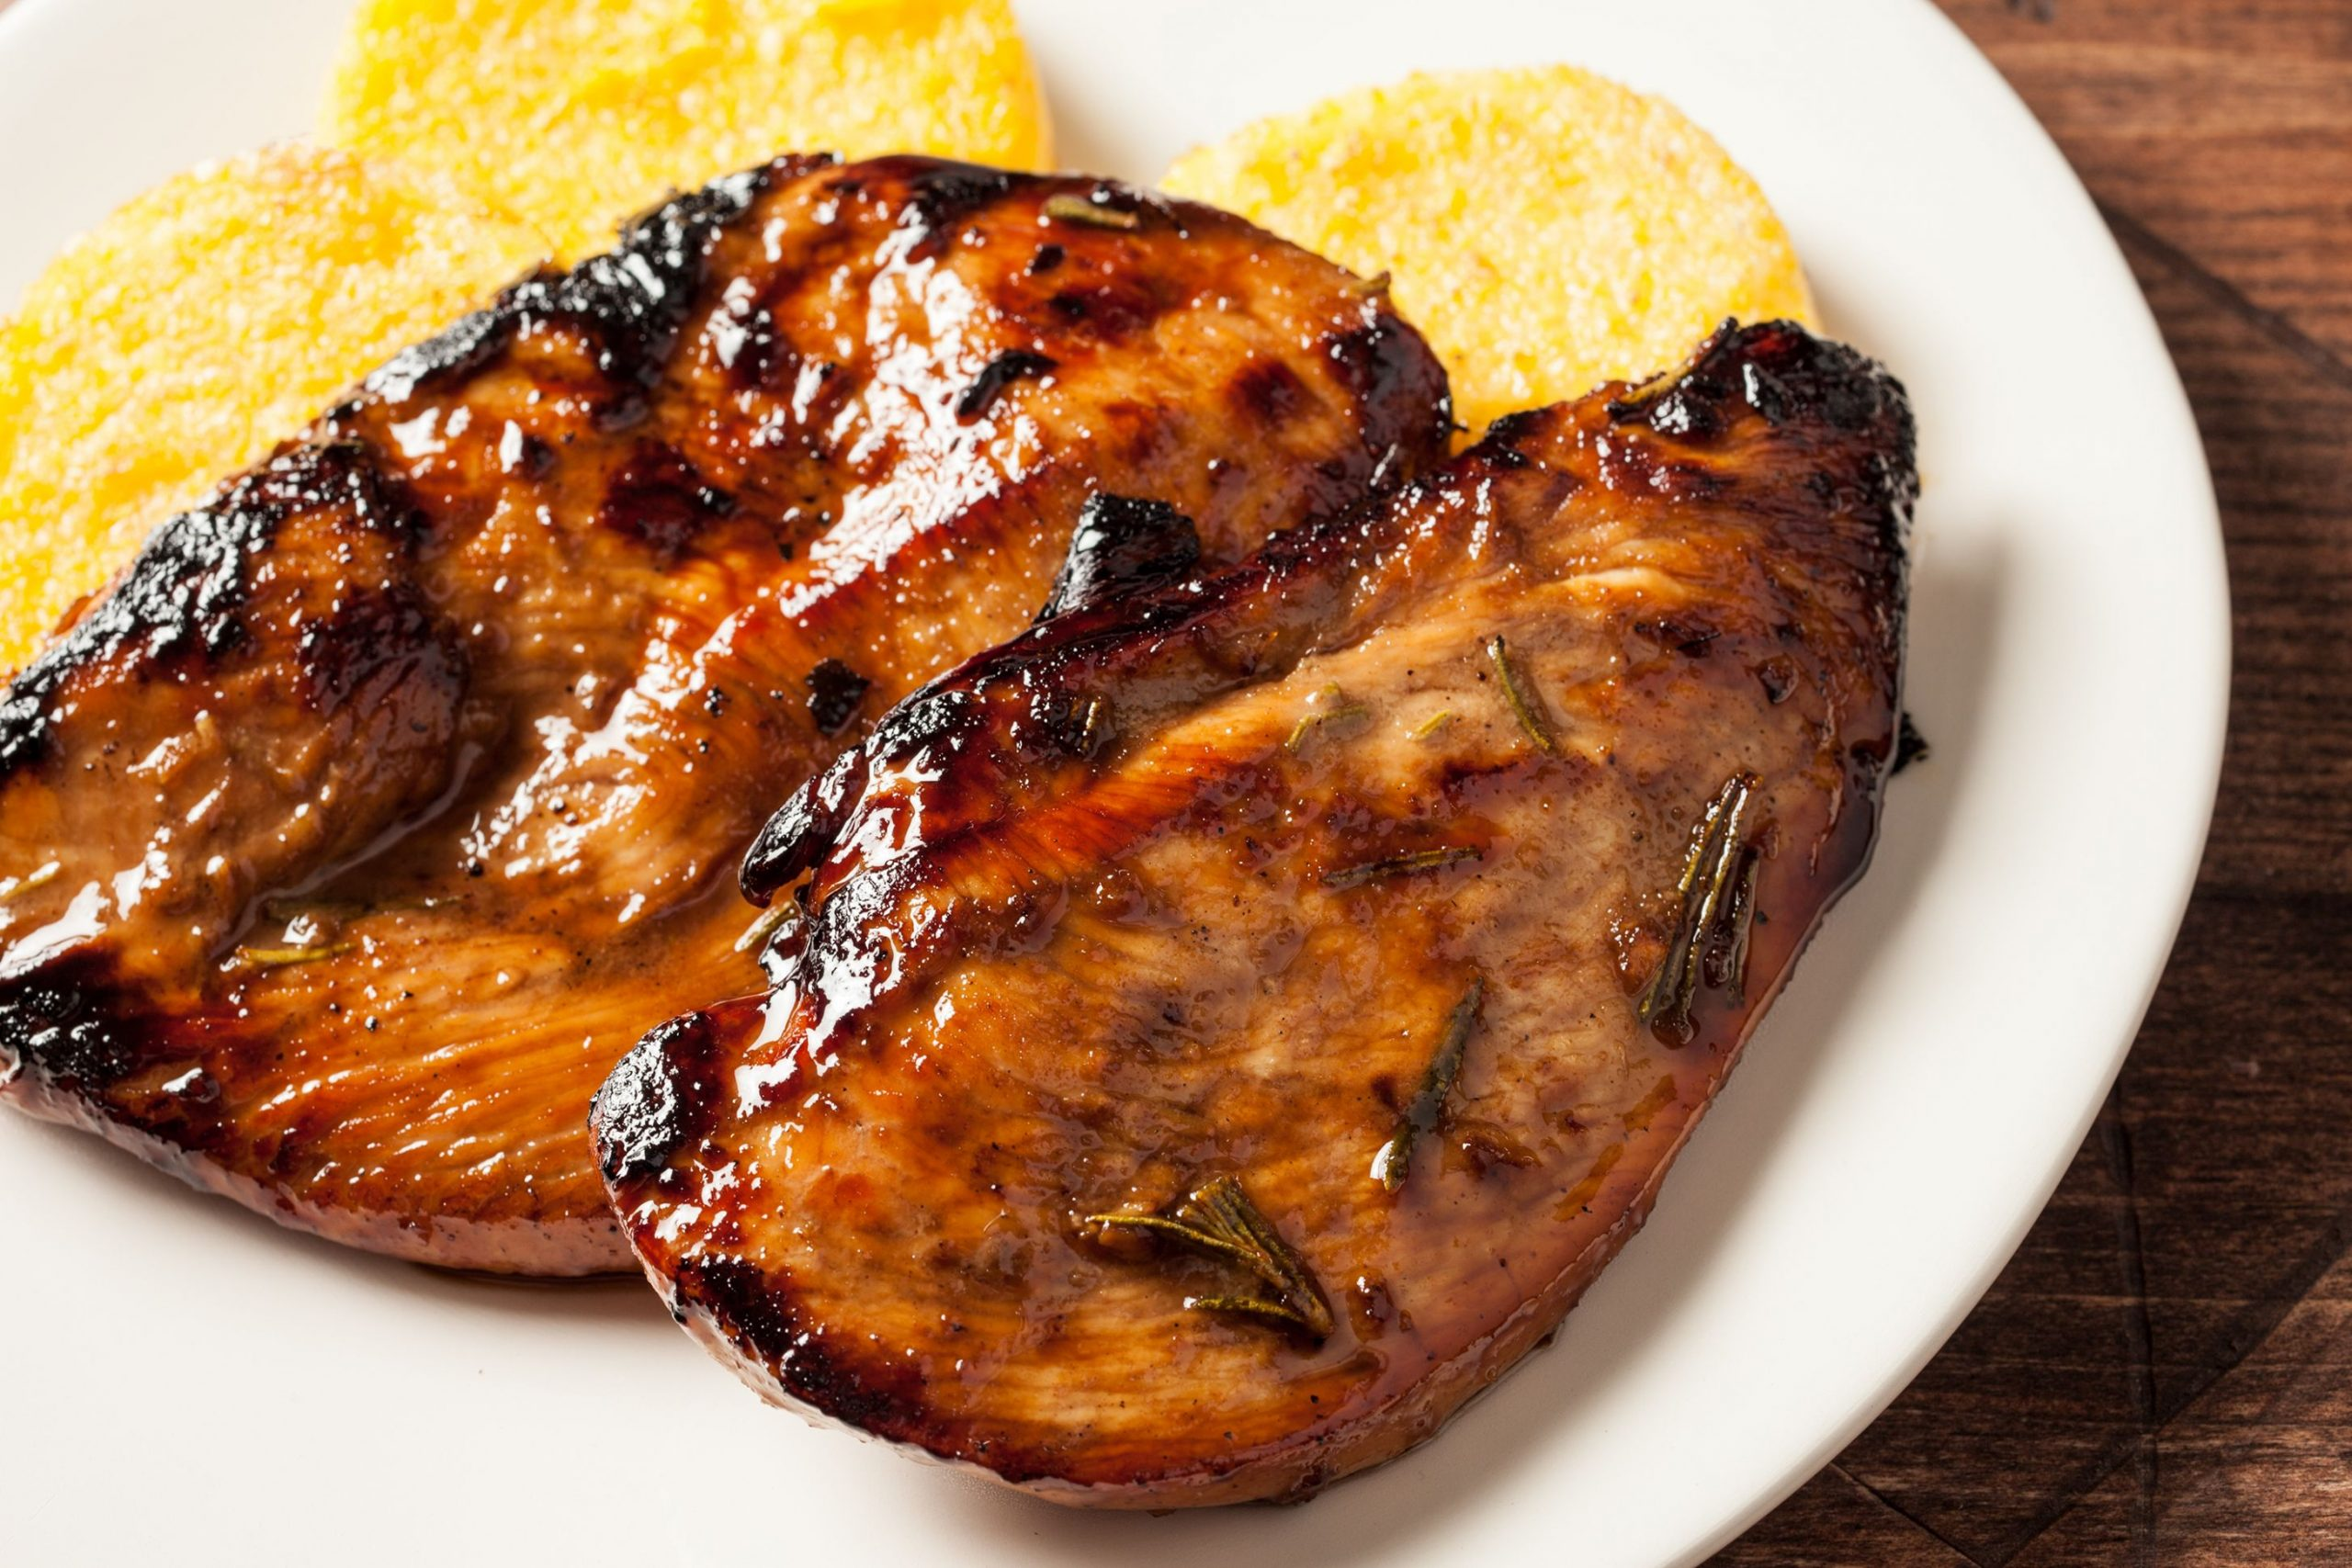 Grilled Chicken Breasts with Balsamic Rosemary Marinade - Recipe Chicken Breast Balsamic Vinegar